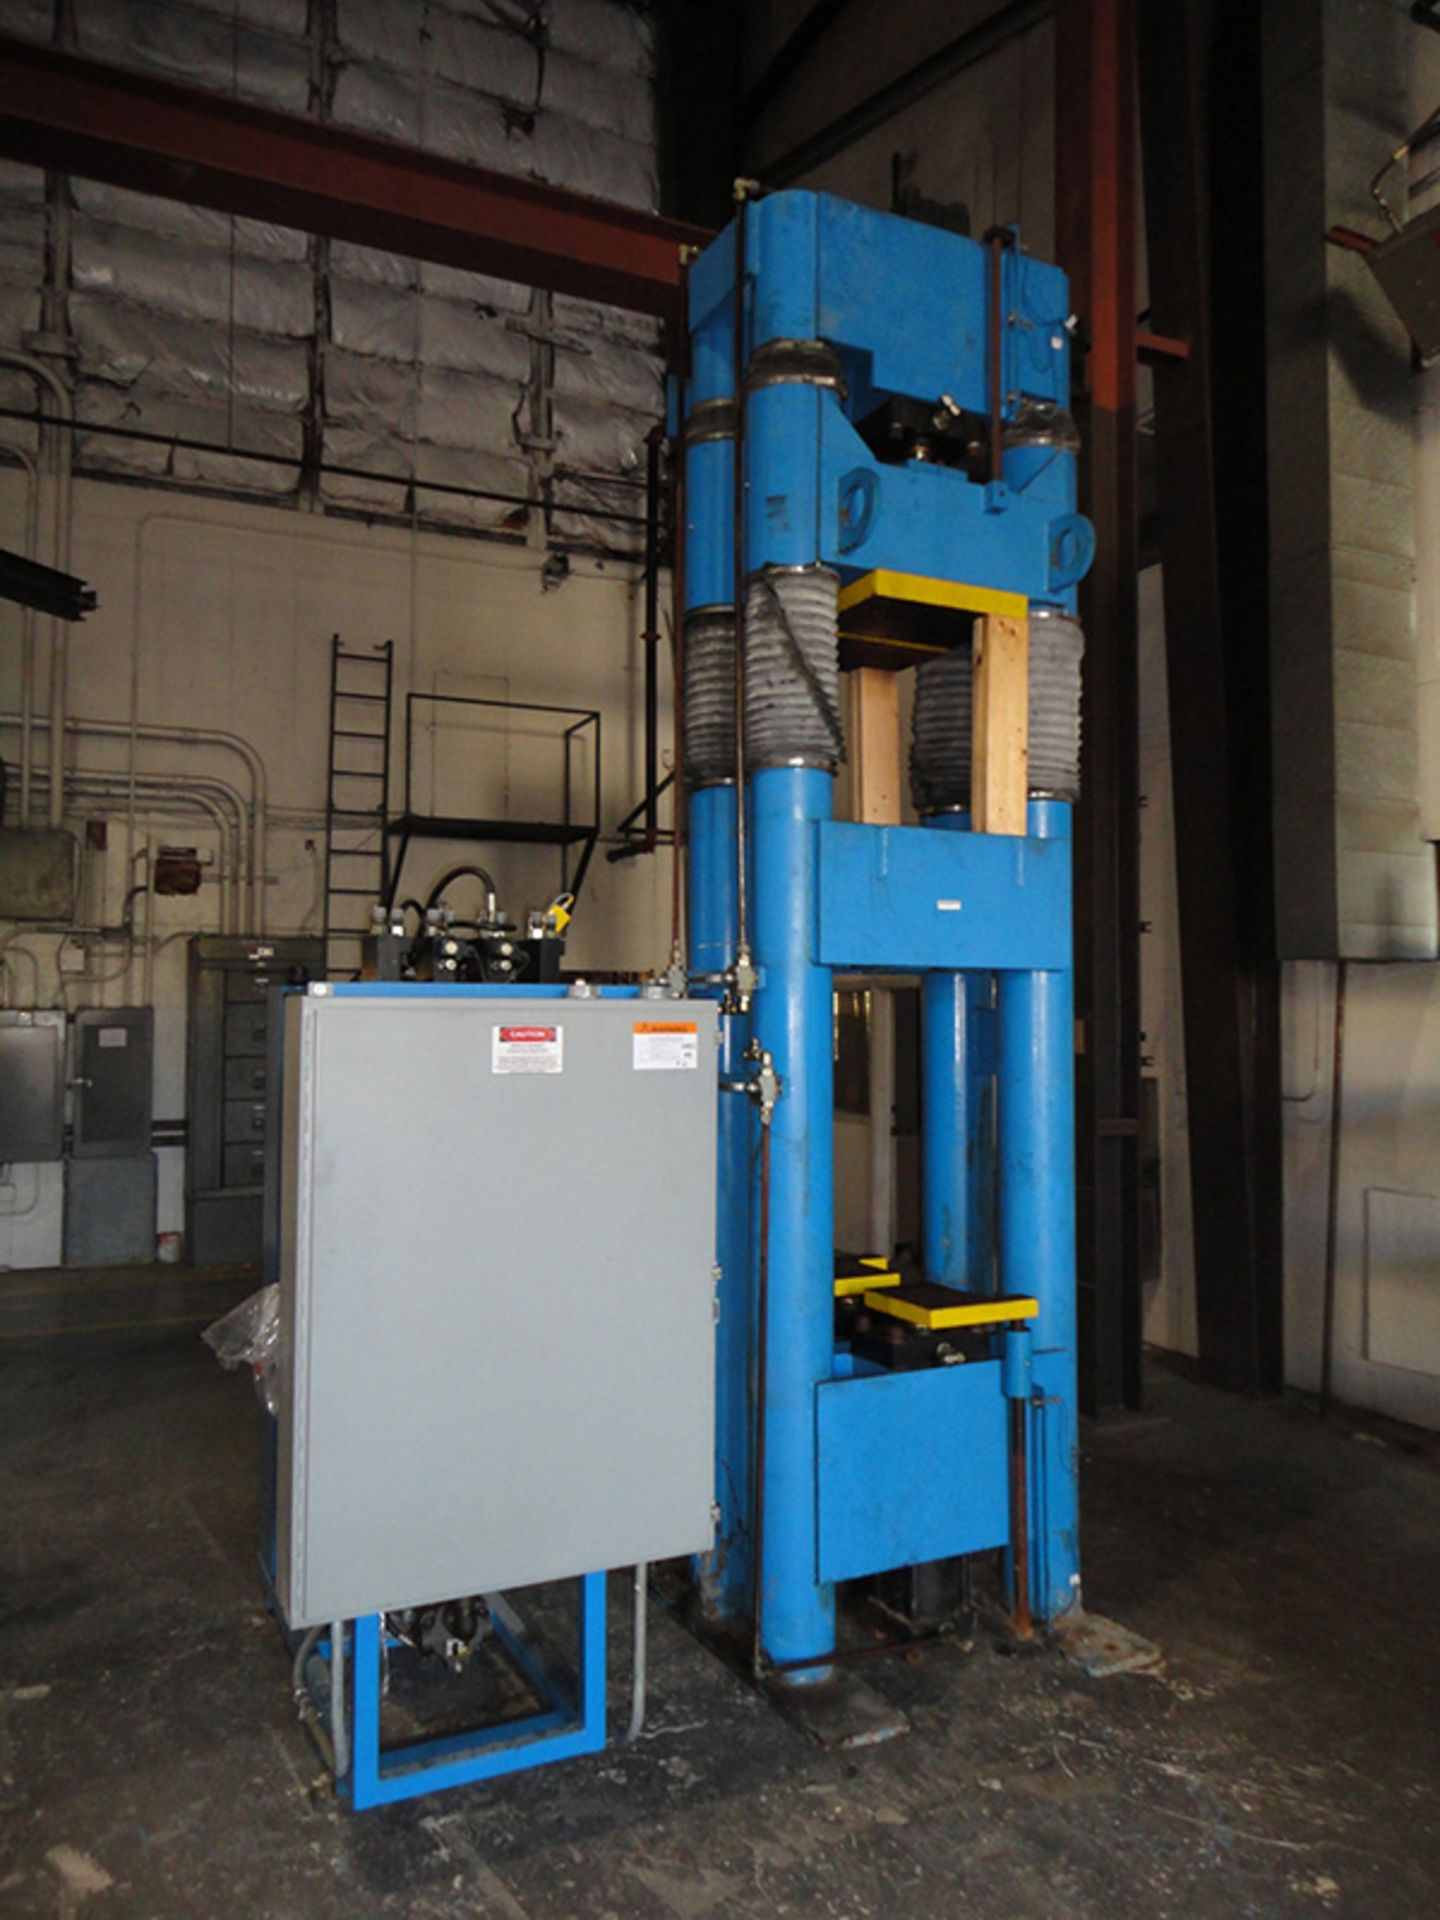 "Lot 22 - 2002 Beckwood Four Post Hydraulic Powder Compaction Press (Up & Down Acting) | 110-Ton x 12"" x 12"" x"